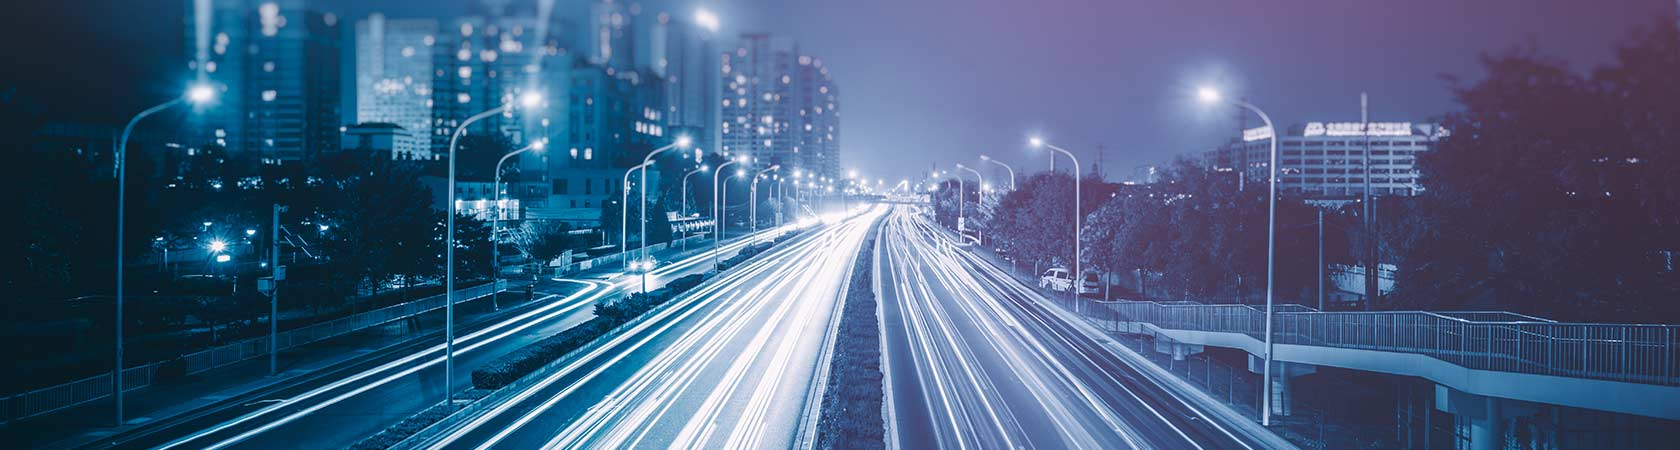 Big Data: How is it impacting sales in the automotive industry?